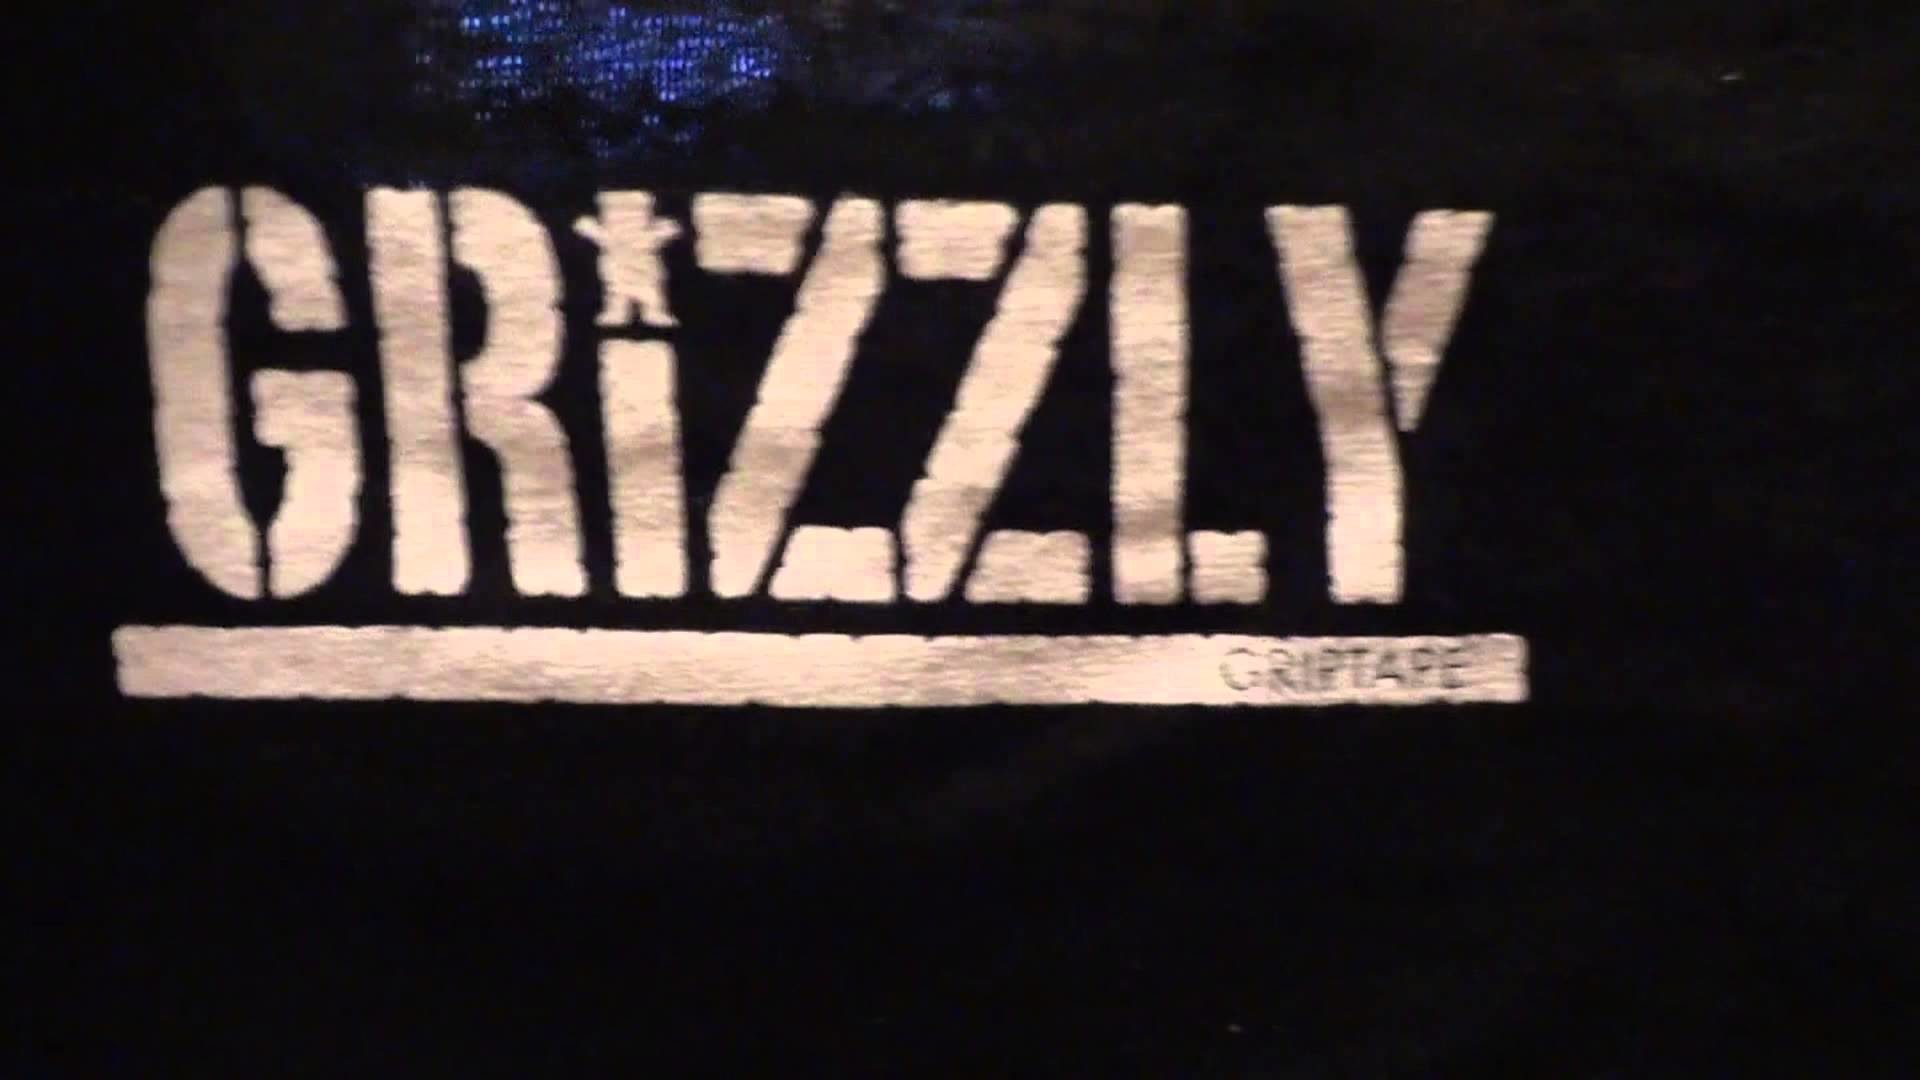 Res: 1920x1080, Grizzly Griptap Pocketbear T-Shirt Review/Fit of the day (Sorry I have been  gone for so long)